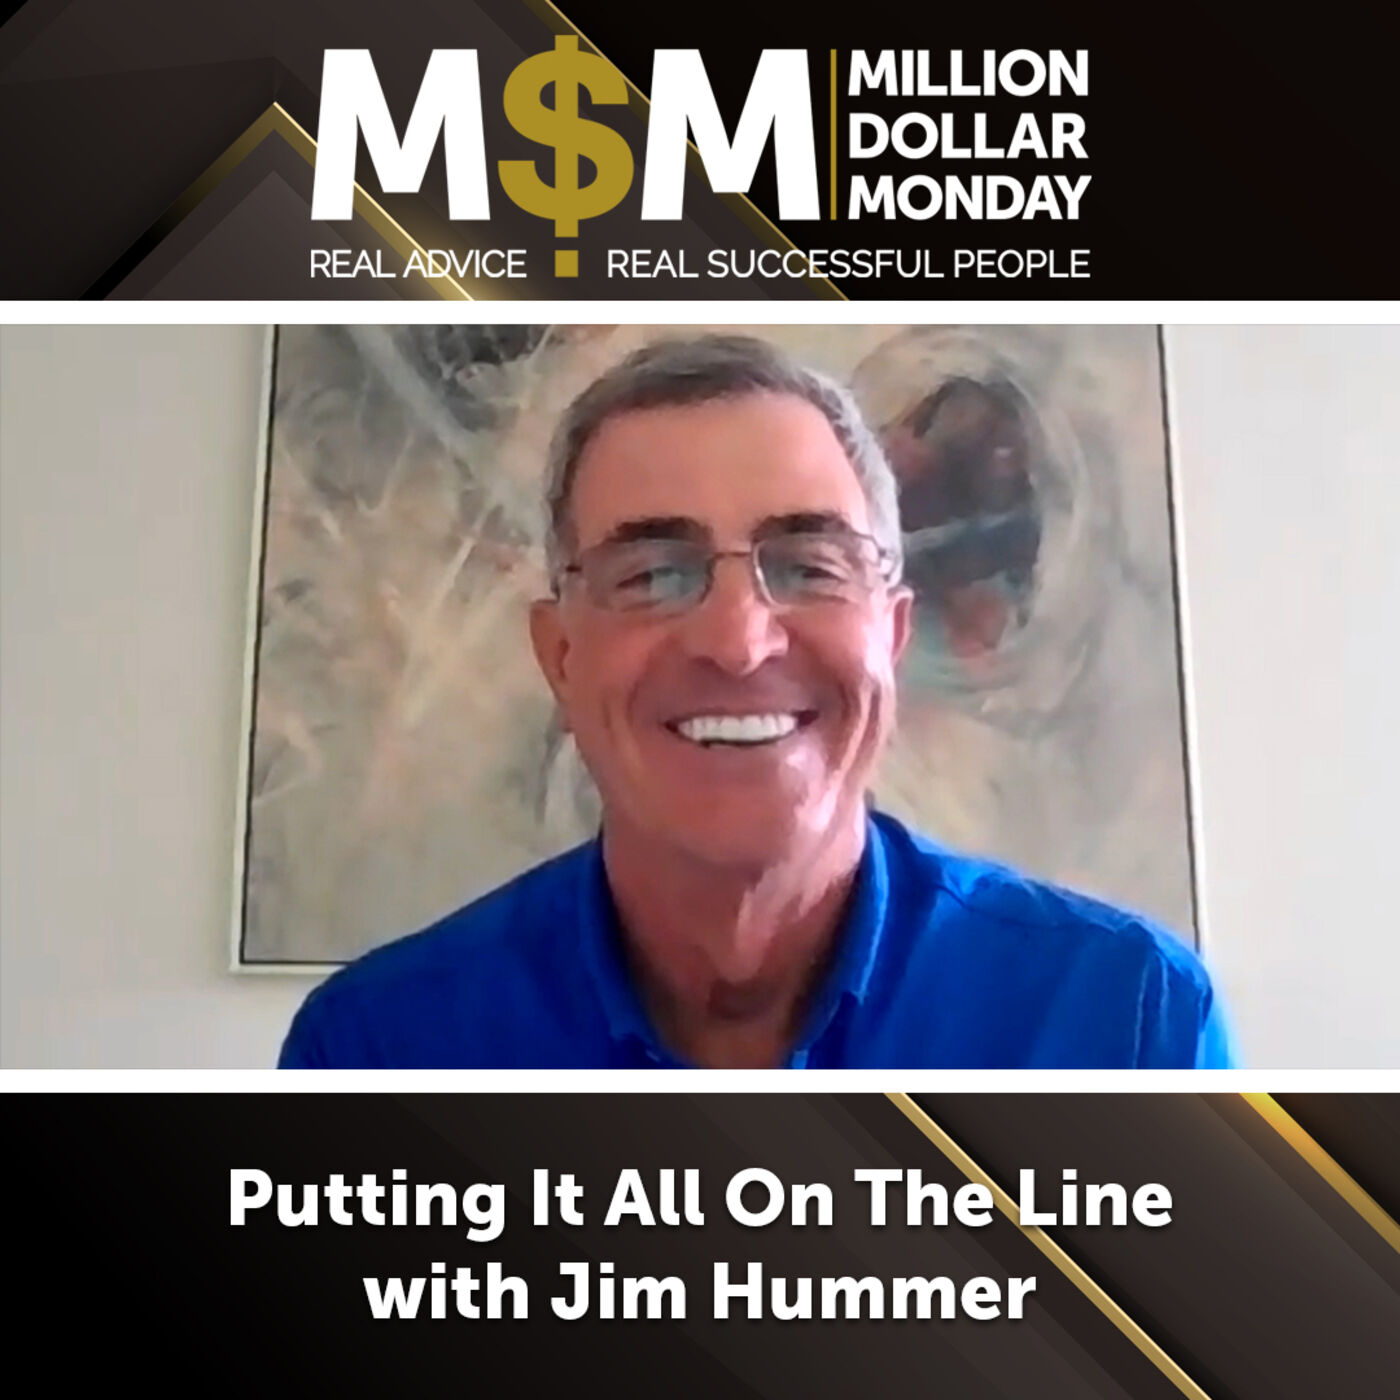 Putting it all on the Line with Jim Hummer